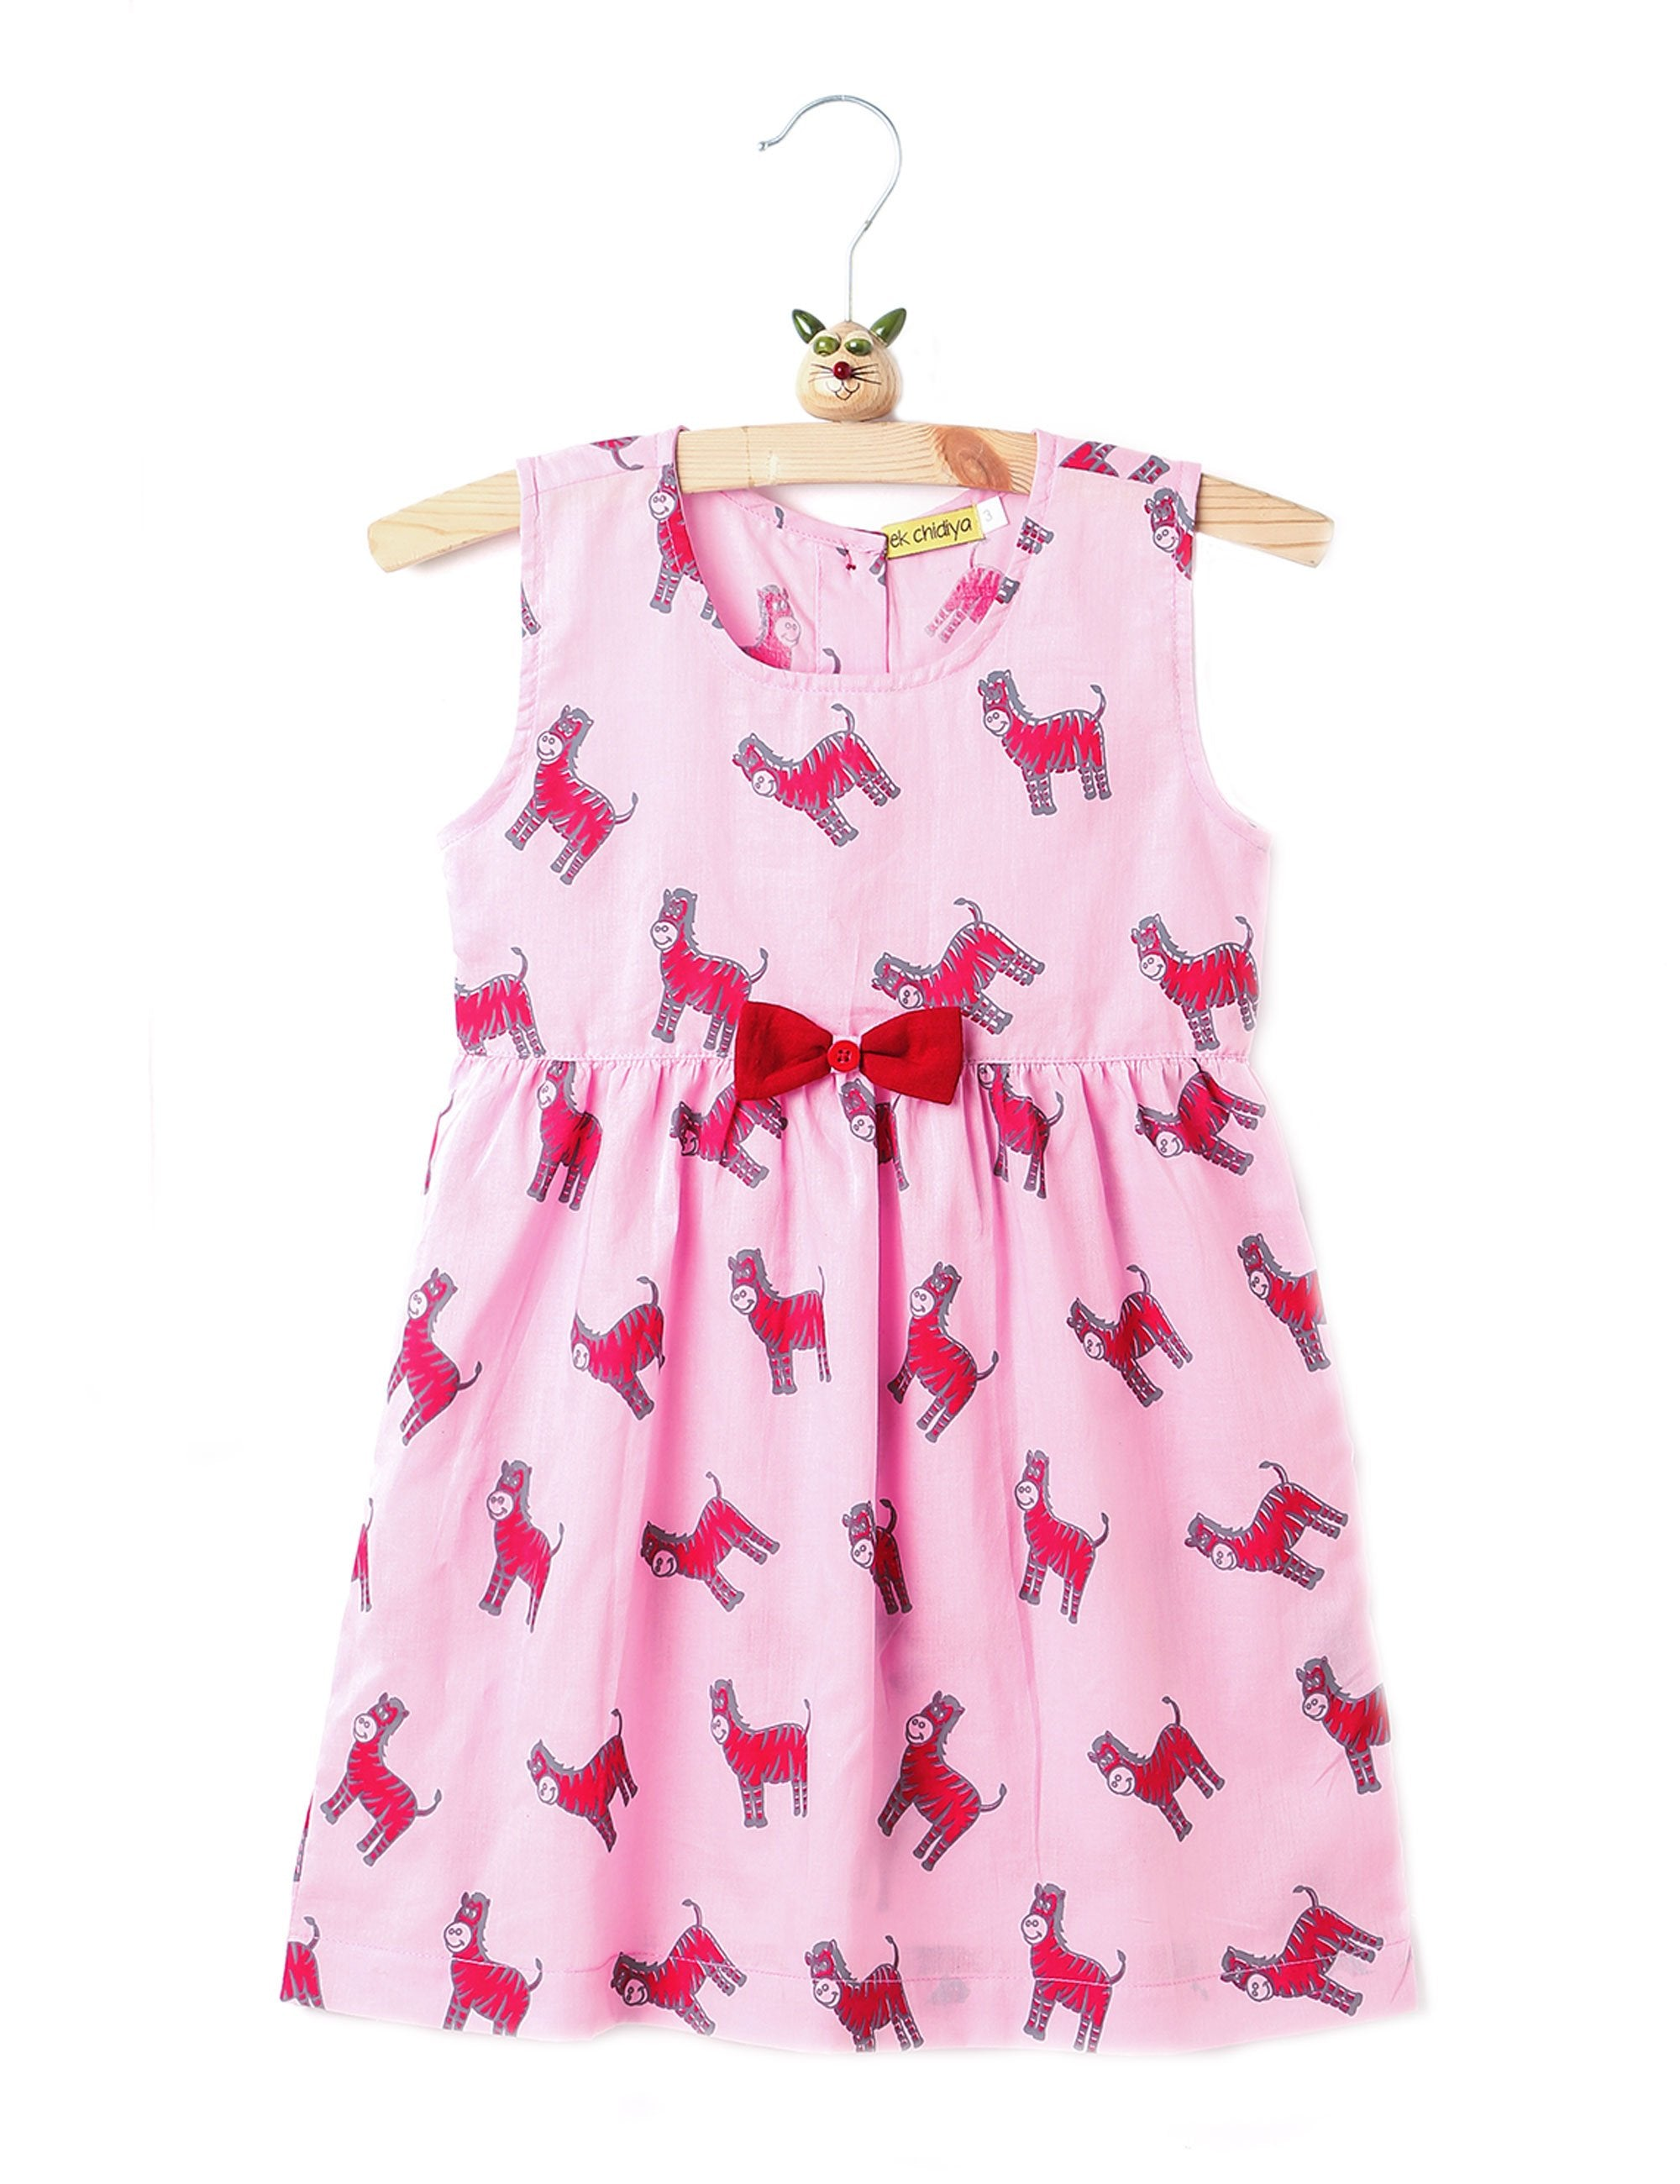 Printed Summer Frock In Light Pink Colour for Girls